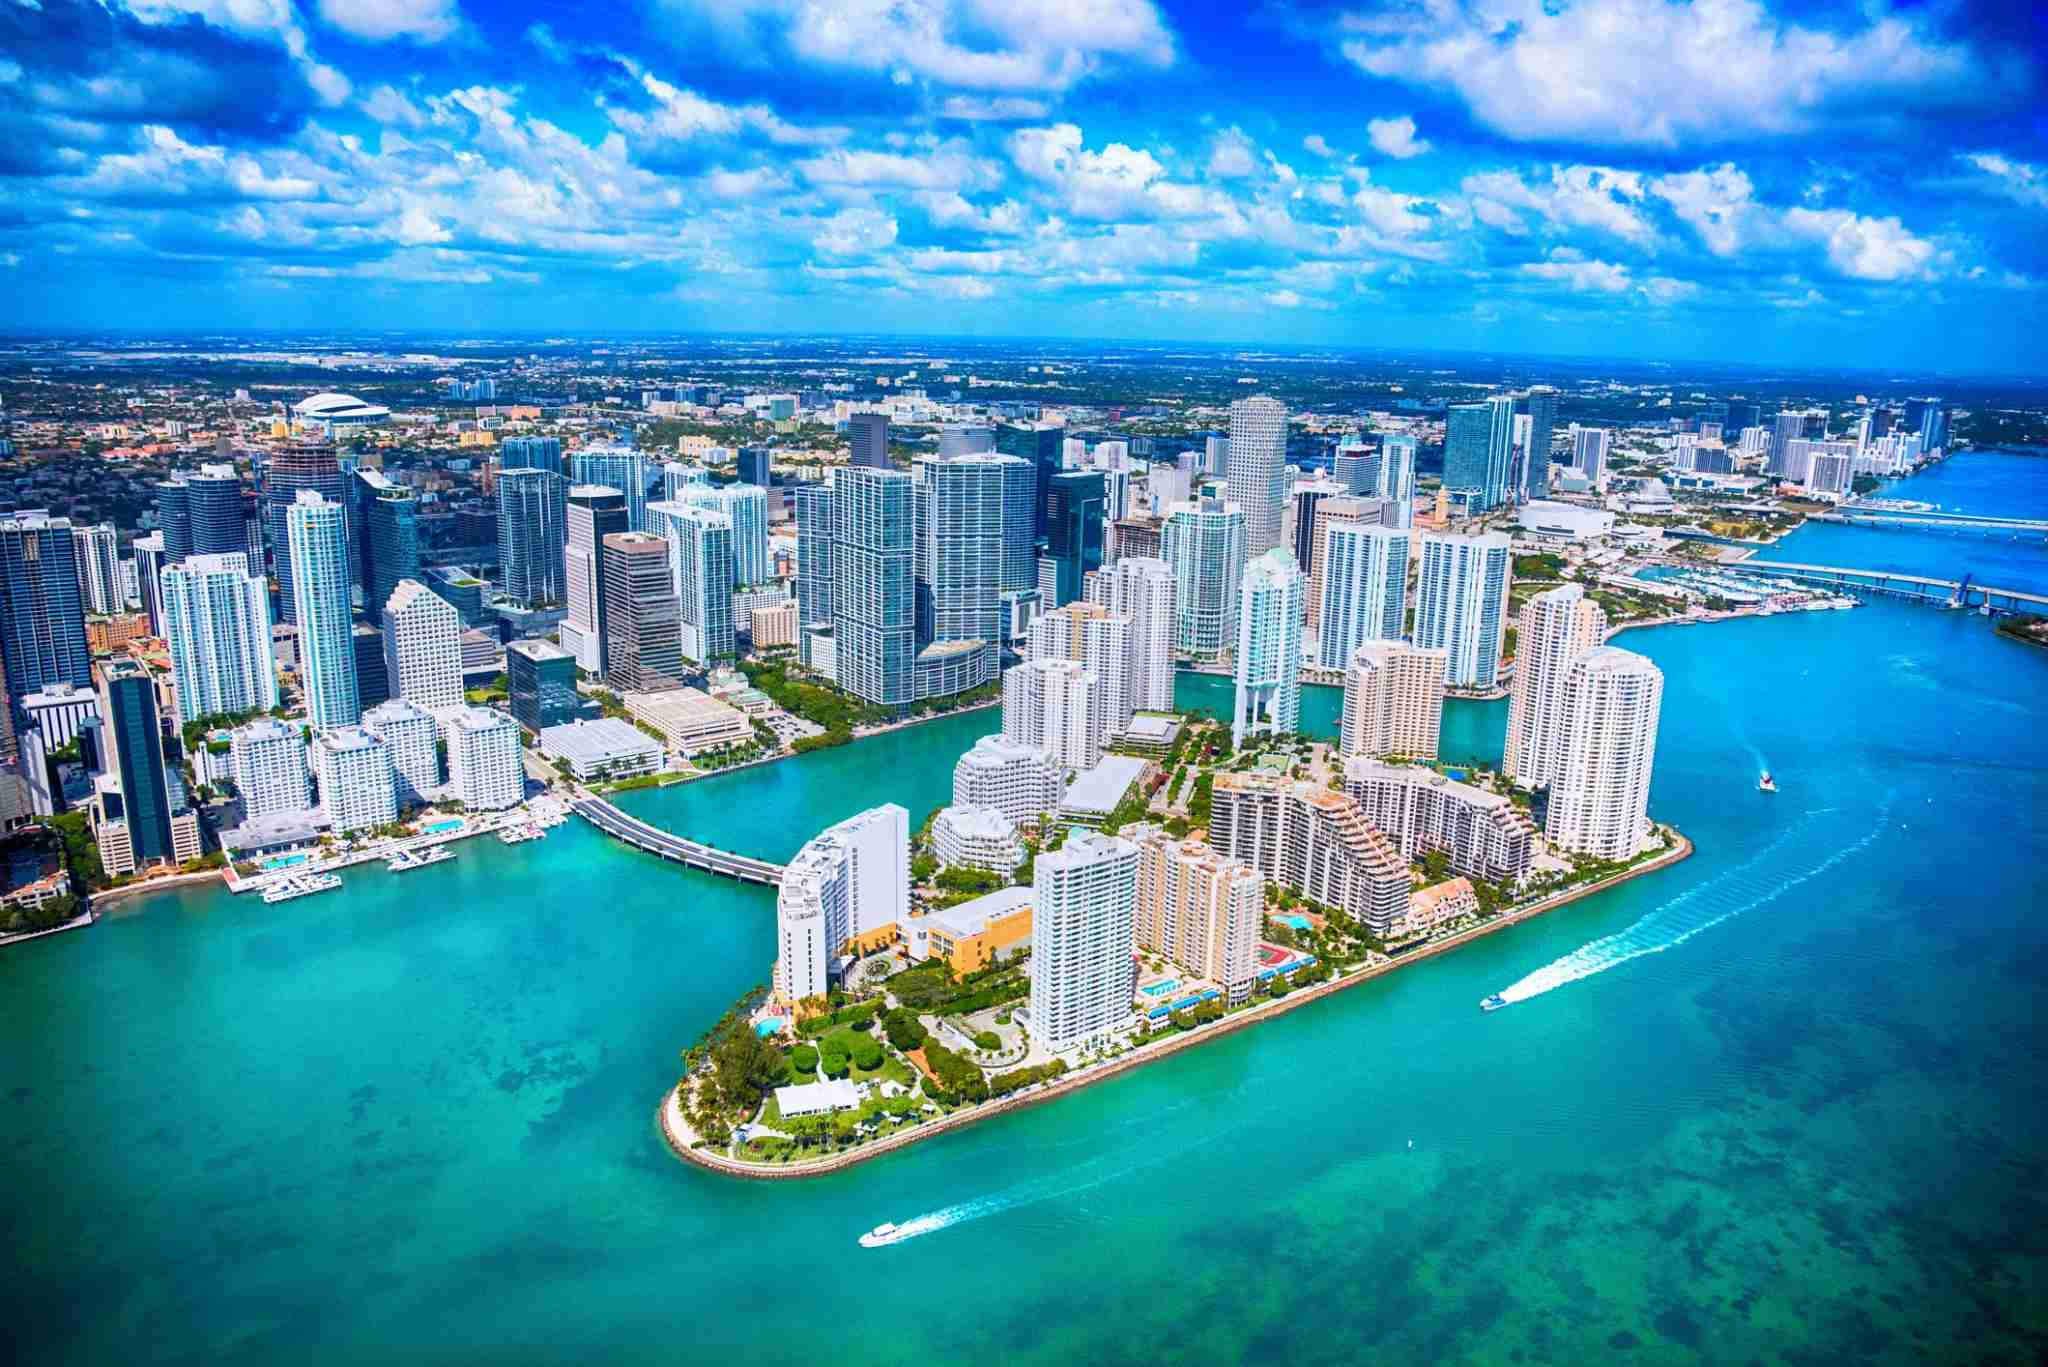 Downtown Miami and Biscayne Bay